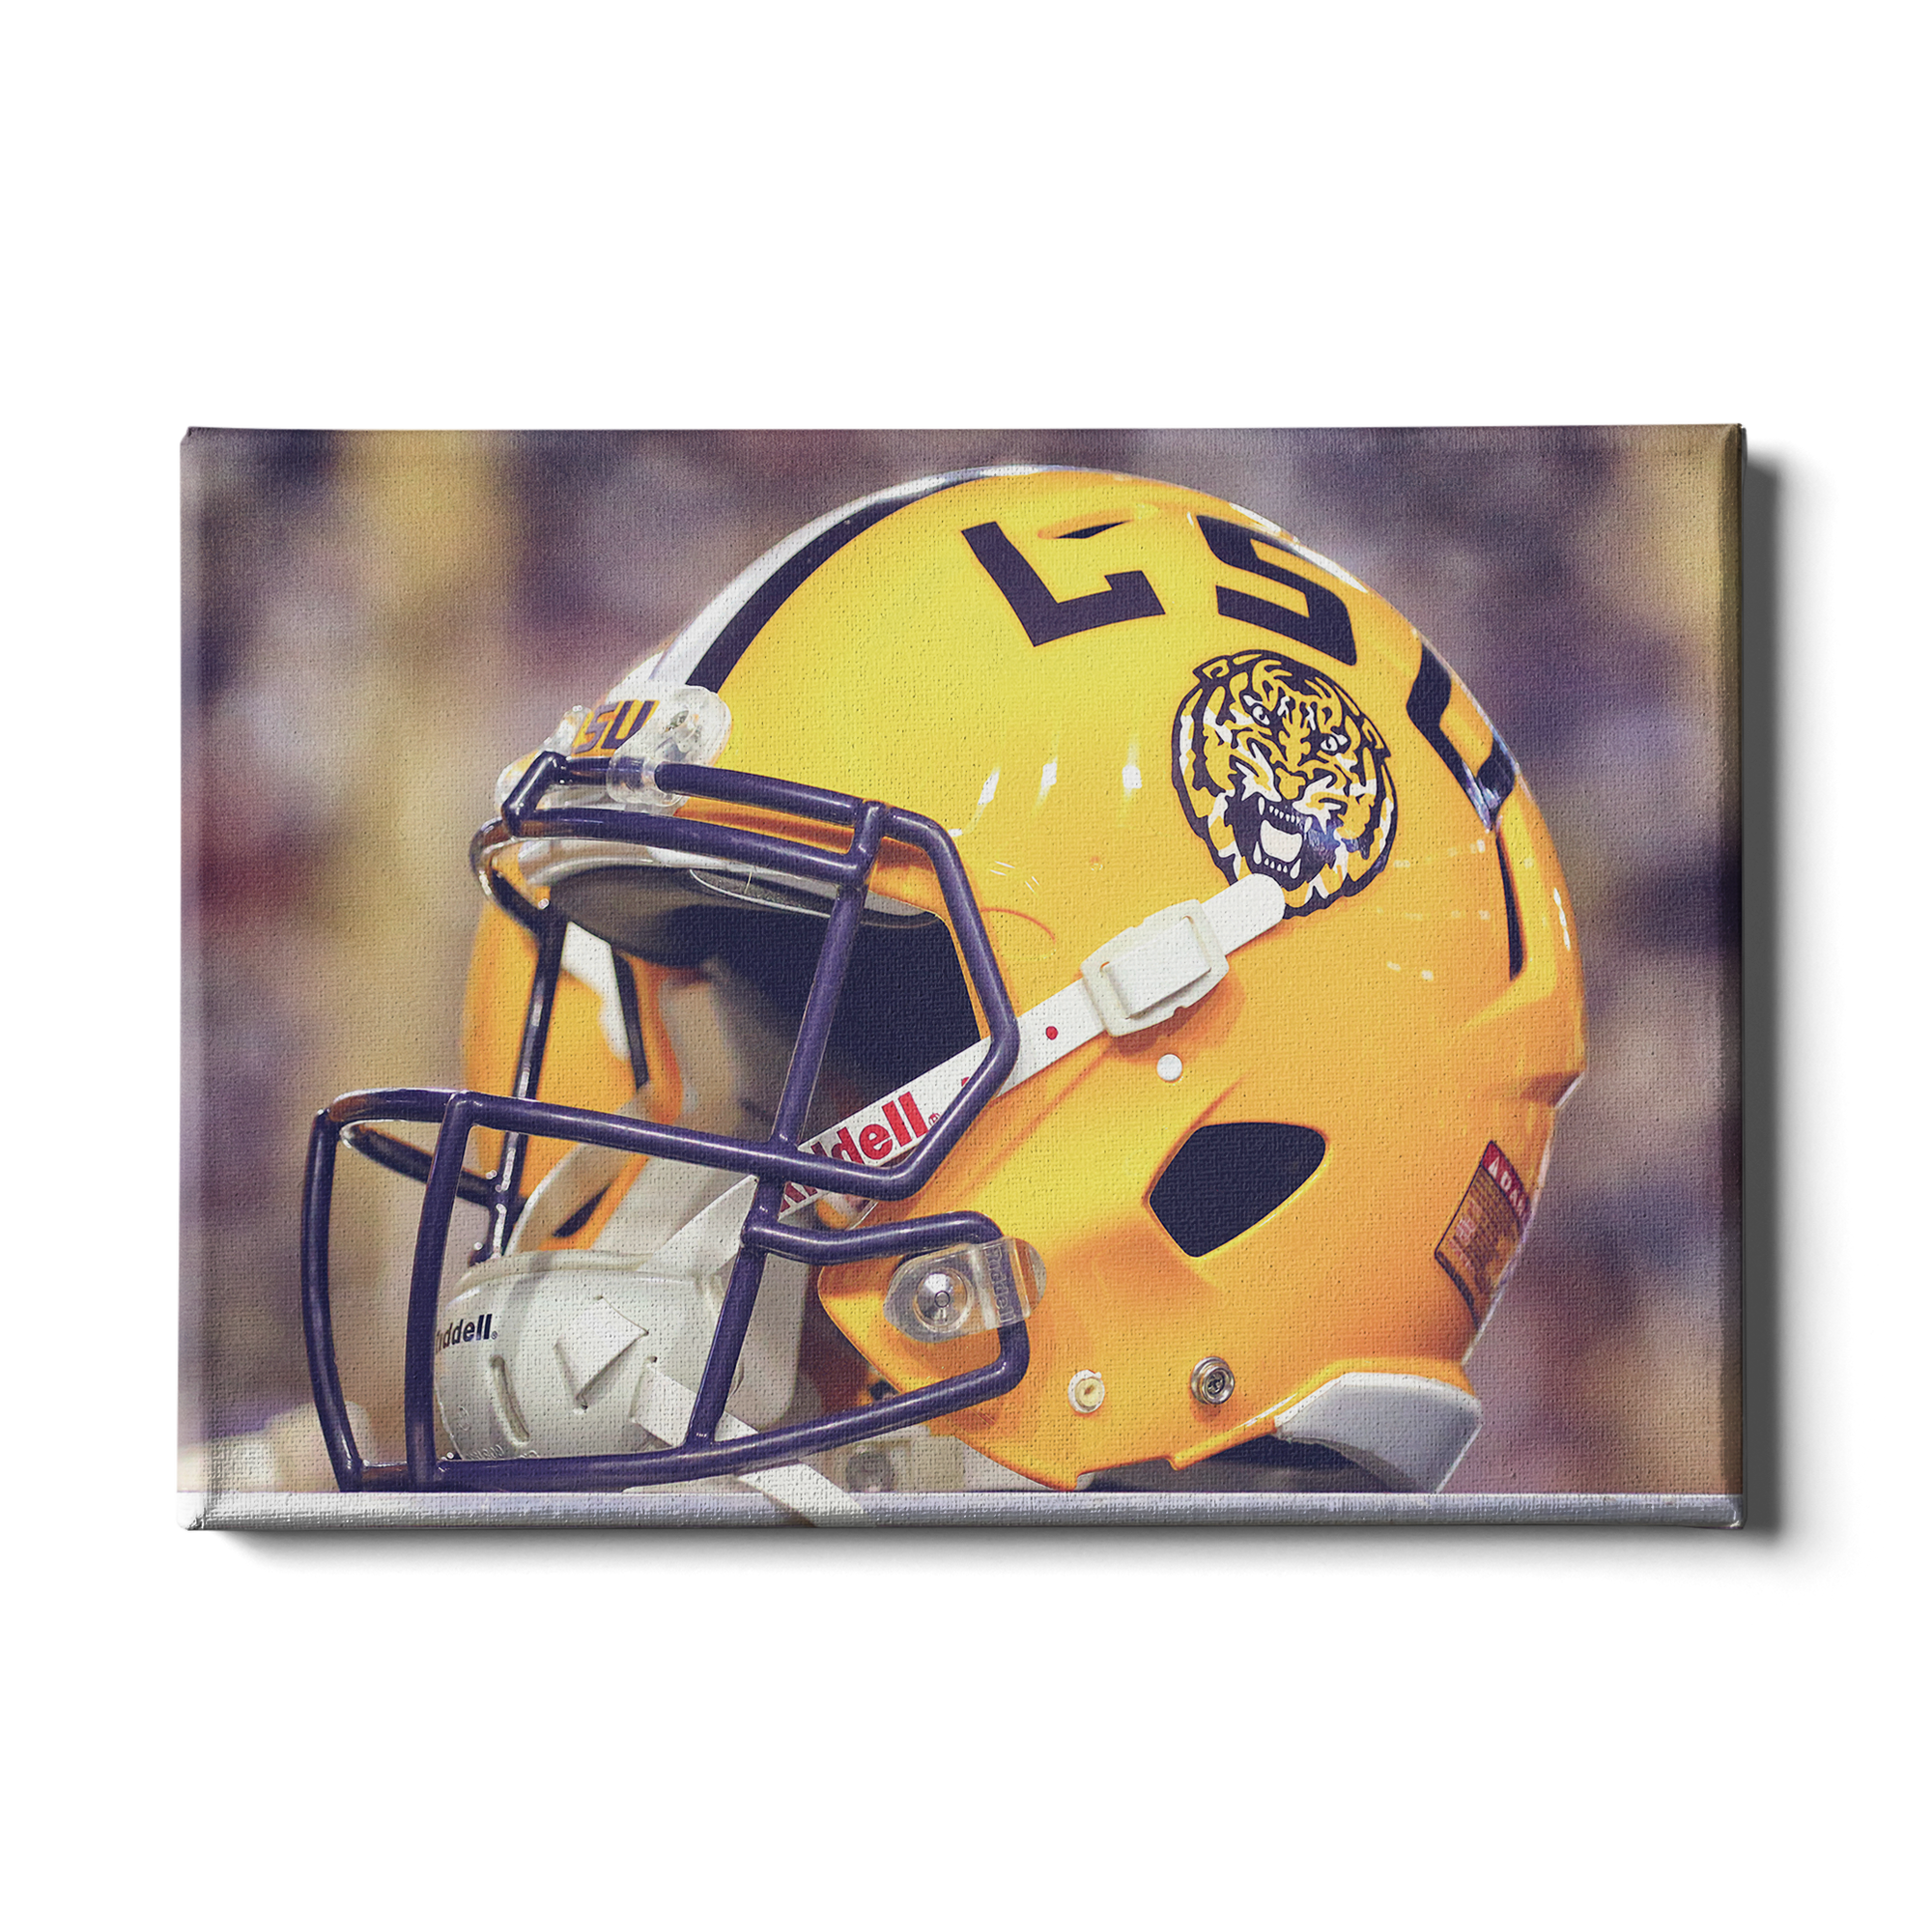 LSU Tigers - Tiger Helmet - College Wall Art #Canvas